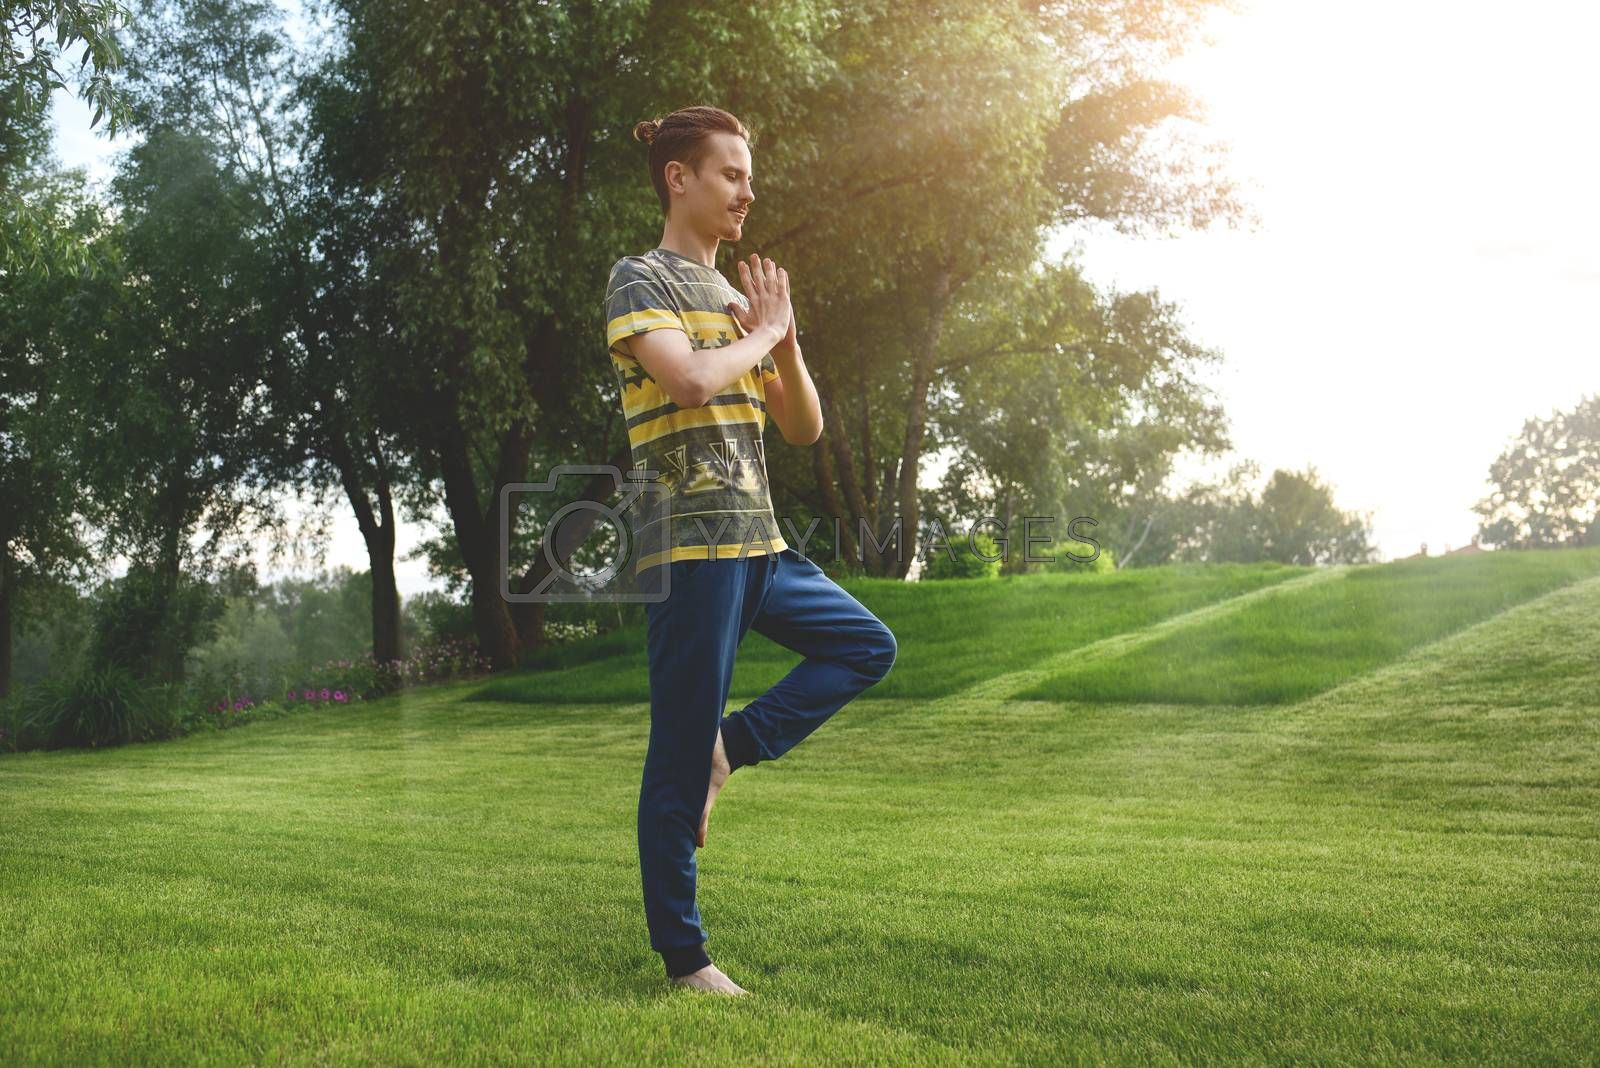 Fitness man doing exercise on one leg isolated in the park. enjoying nature, yoga and meditation concept. spiritual practices.